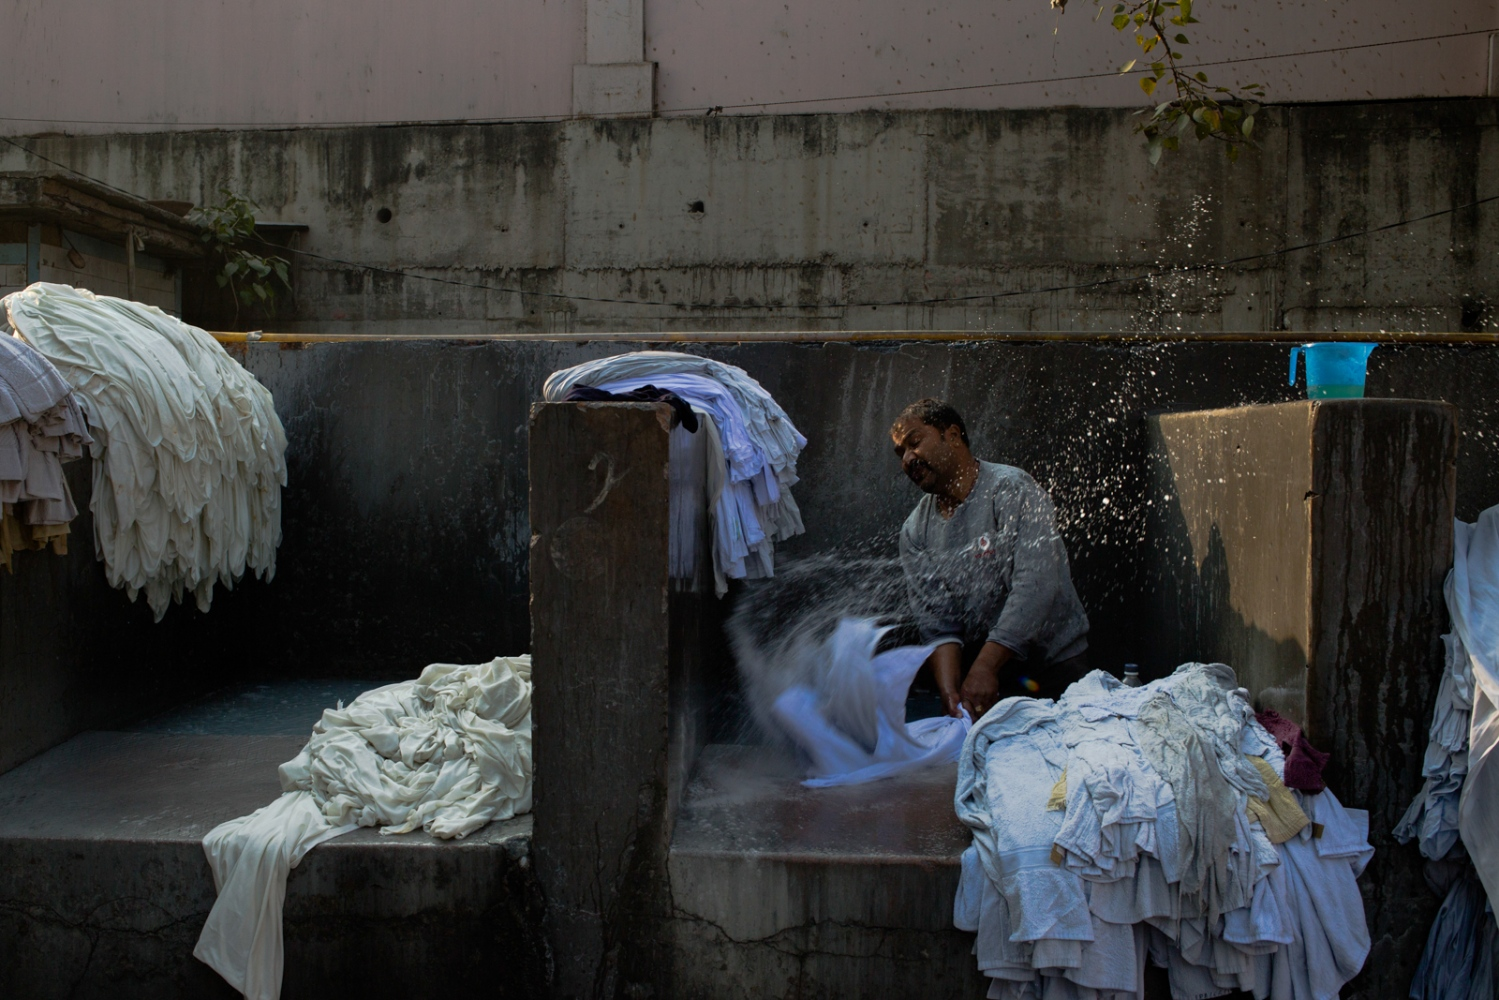 Indian washerman Babu Jan, 42, stands in stone bath as he beats items of clothing to clean and rinse them at a dhobi ghat outdoor laundry where he lives with his family in New Delhi on February 12, 2015.